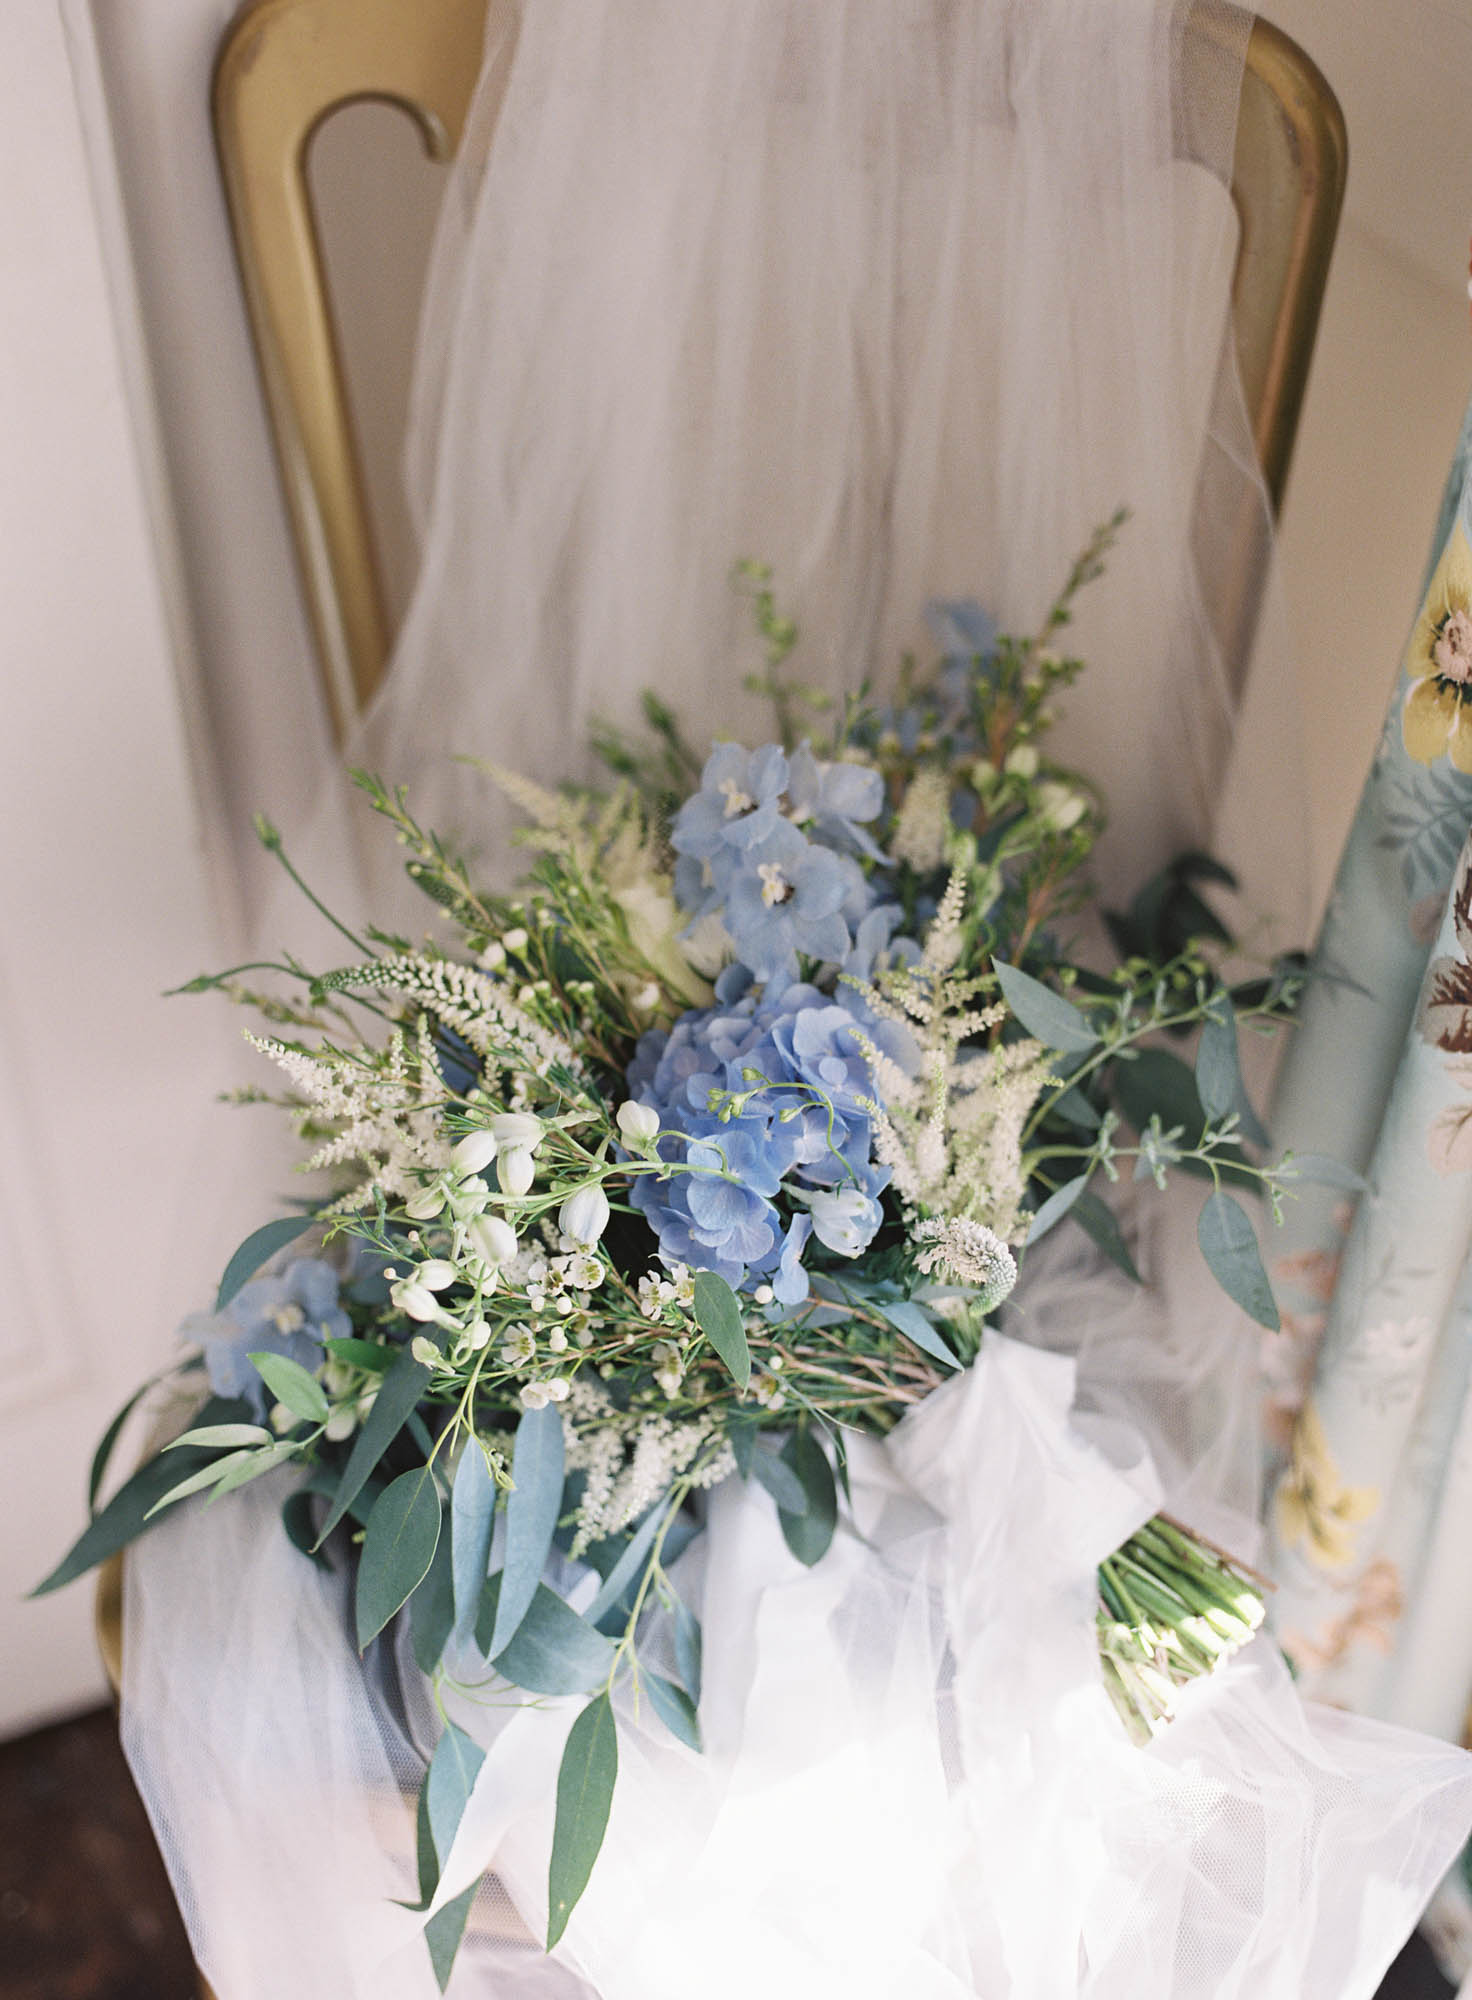 Bridal wedding bouquet in blue, white and green on chair with veil